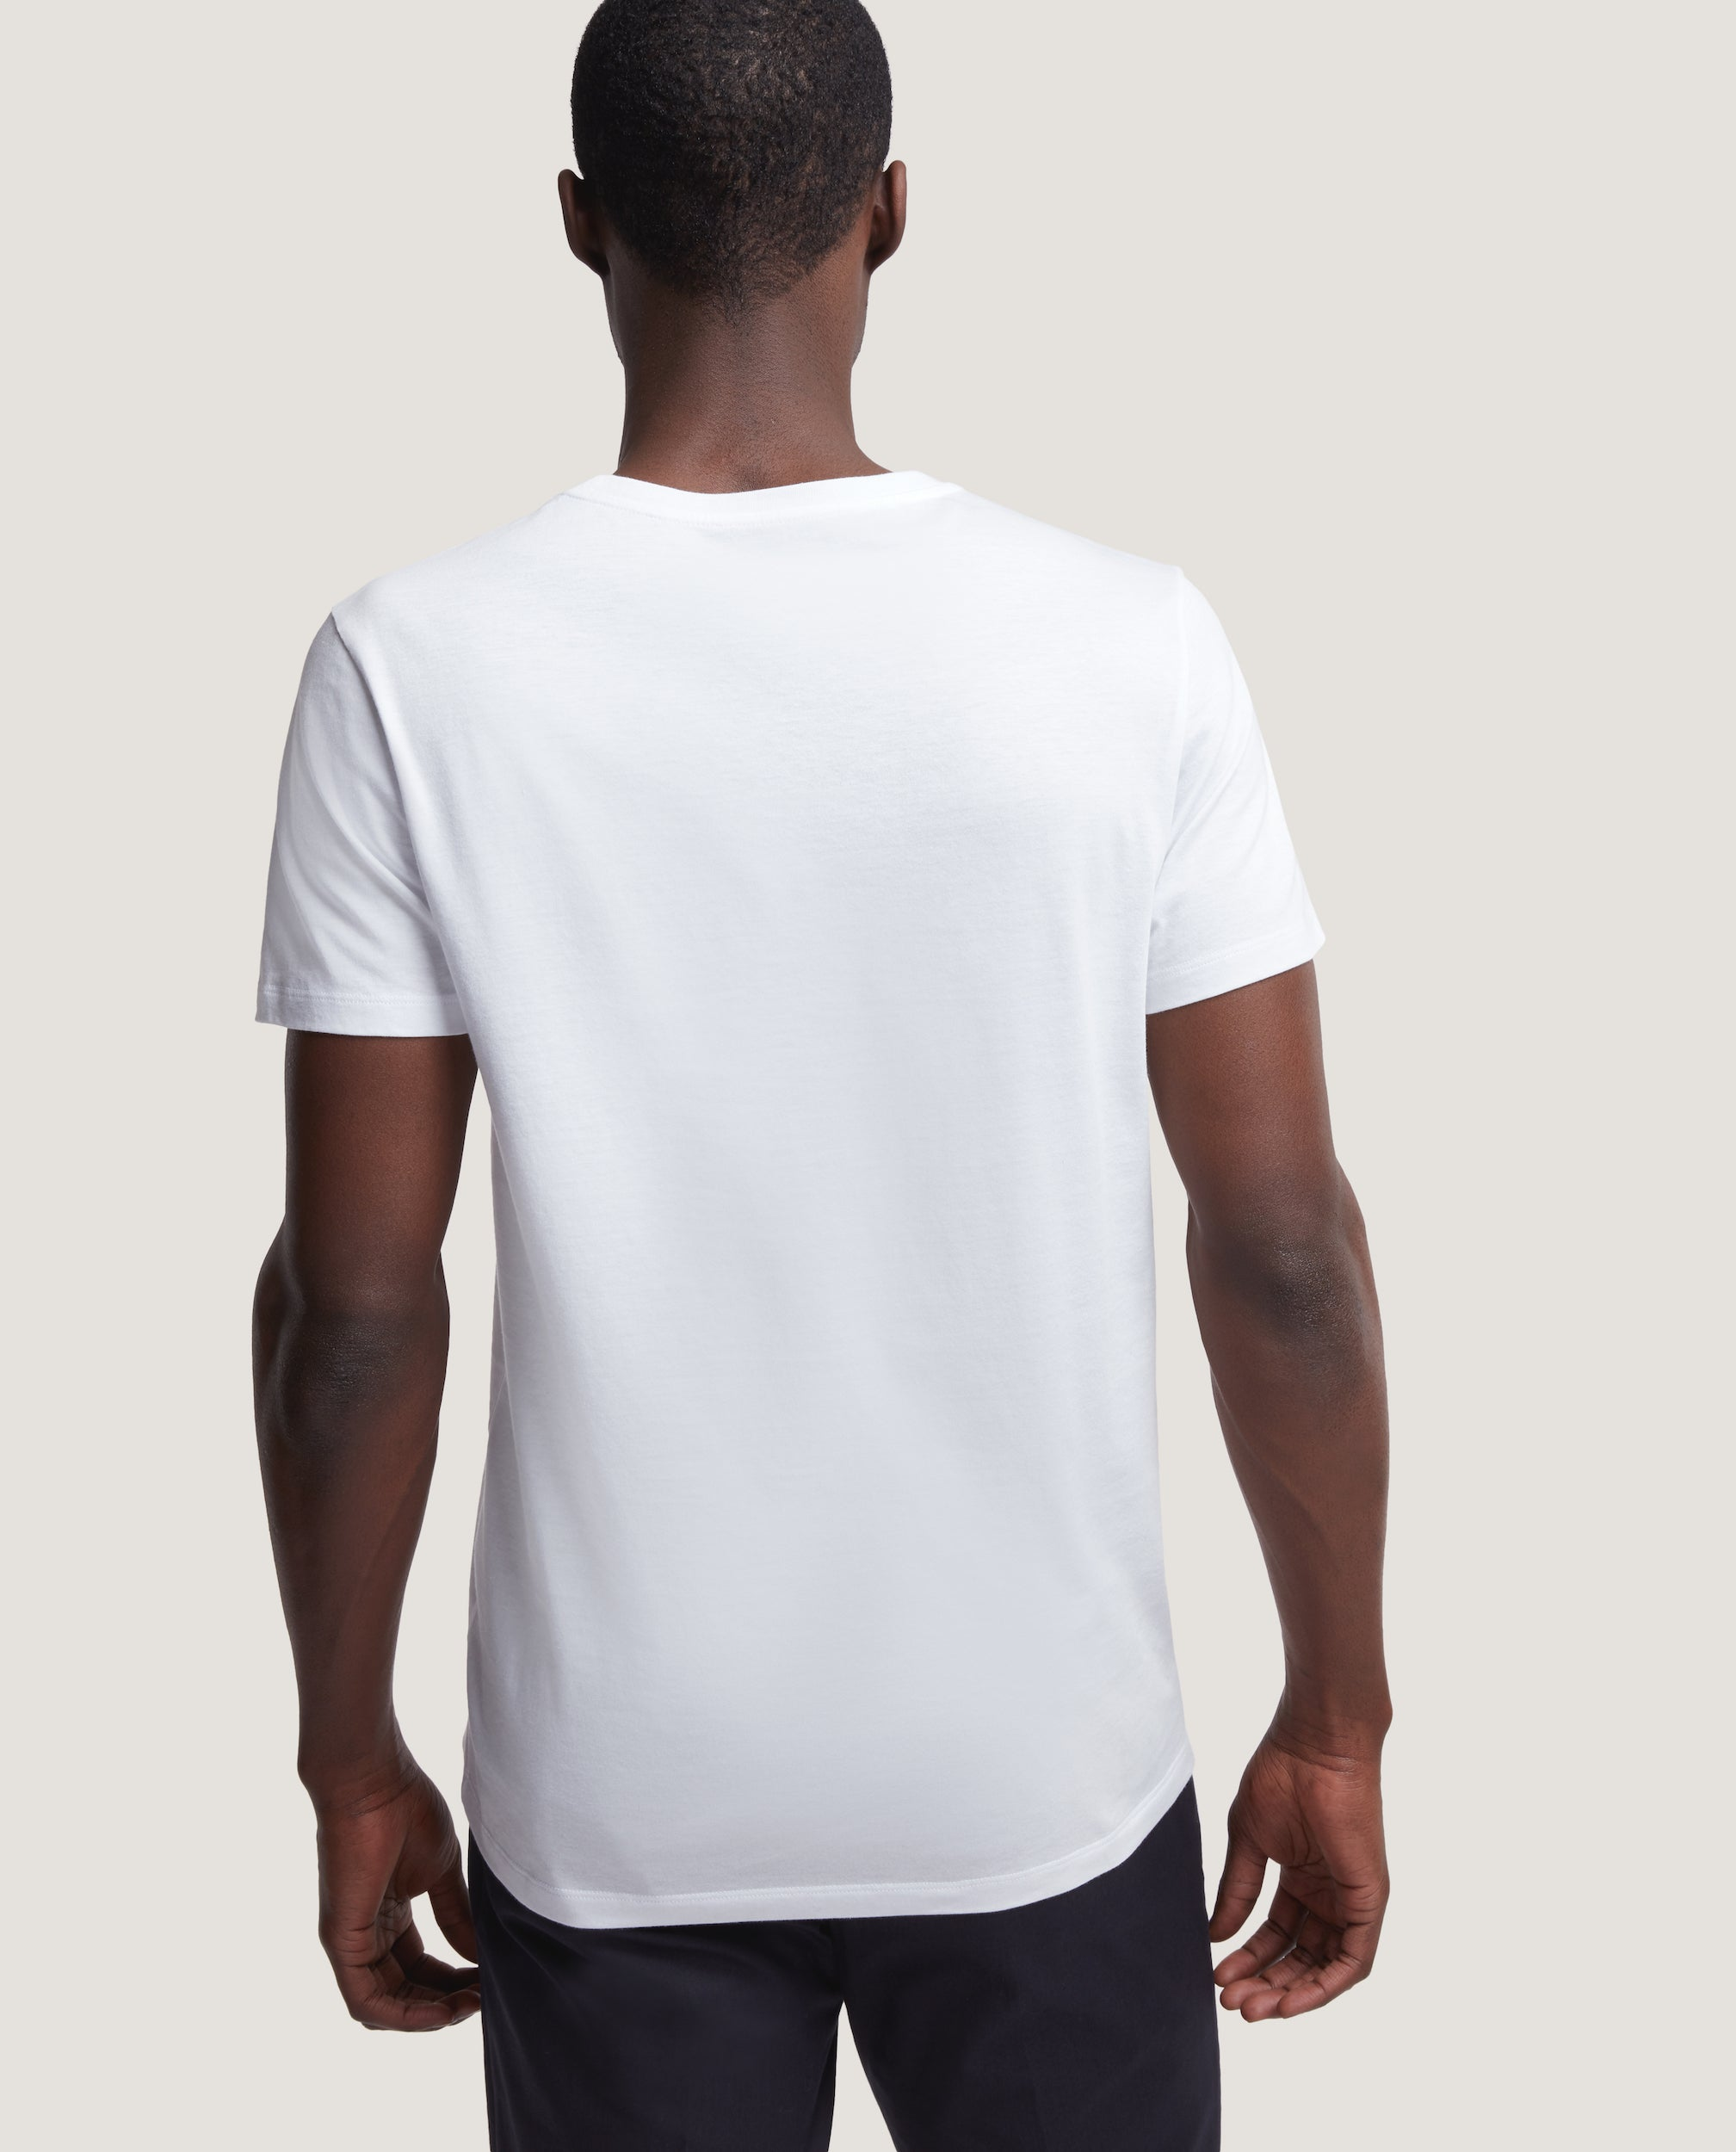 LOTHAR T-shirt | Cotton | White